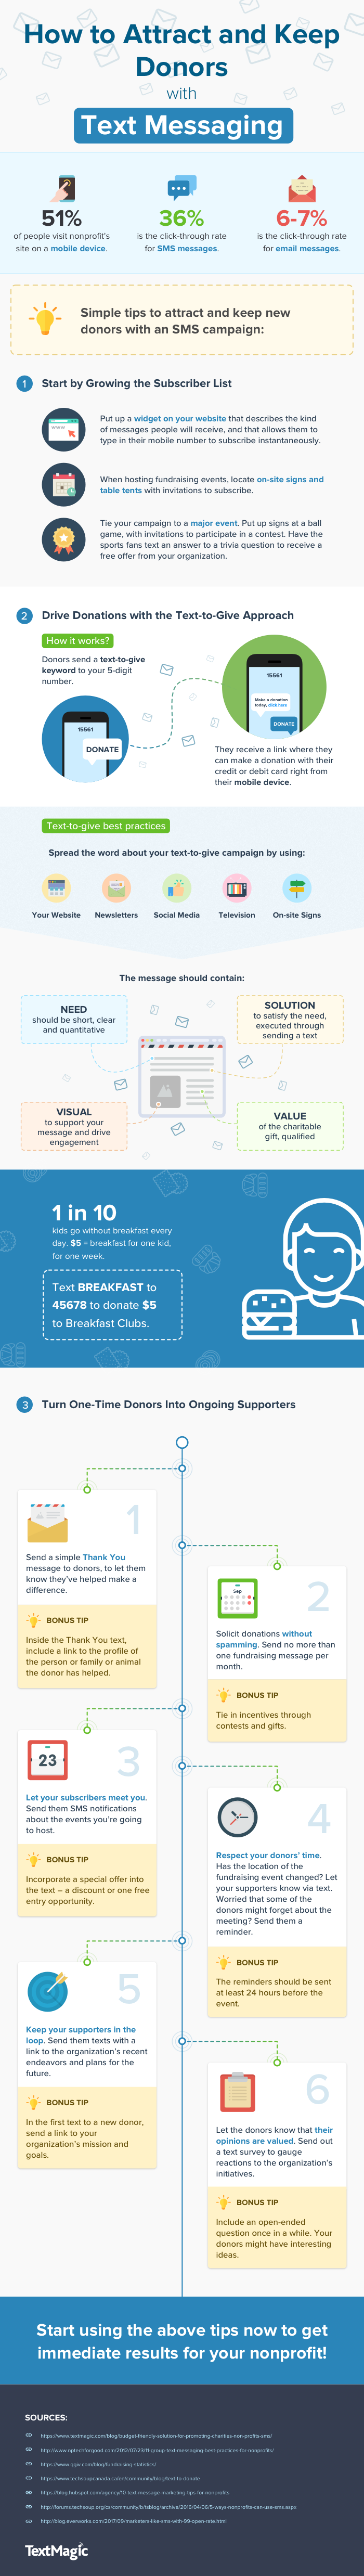 How to Attract Donors with a Text-to-Give Approach [Infographic]